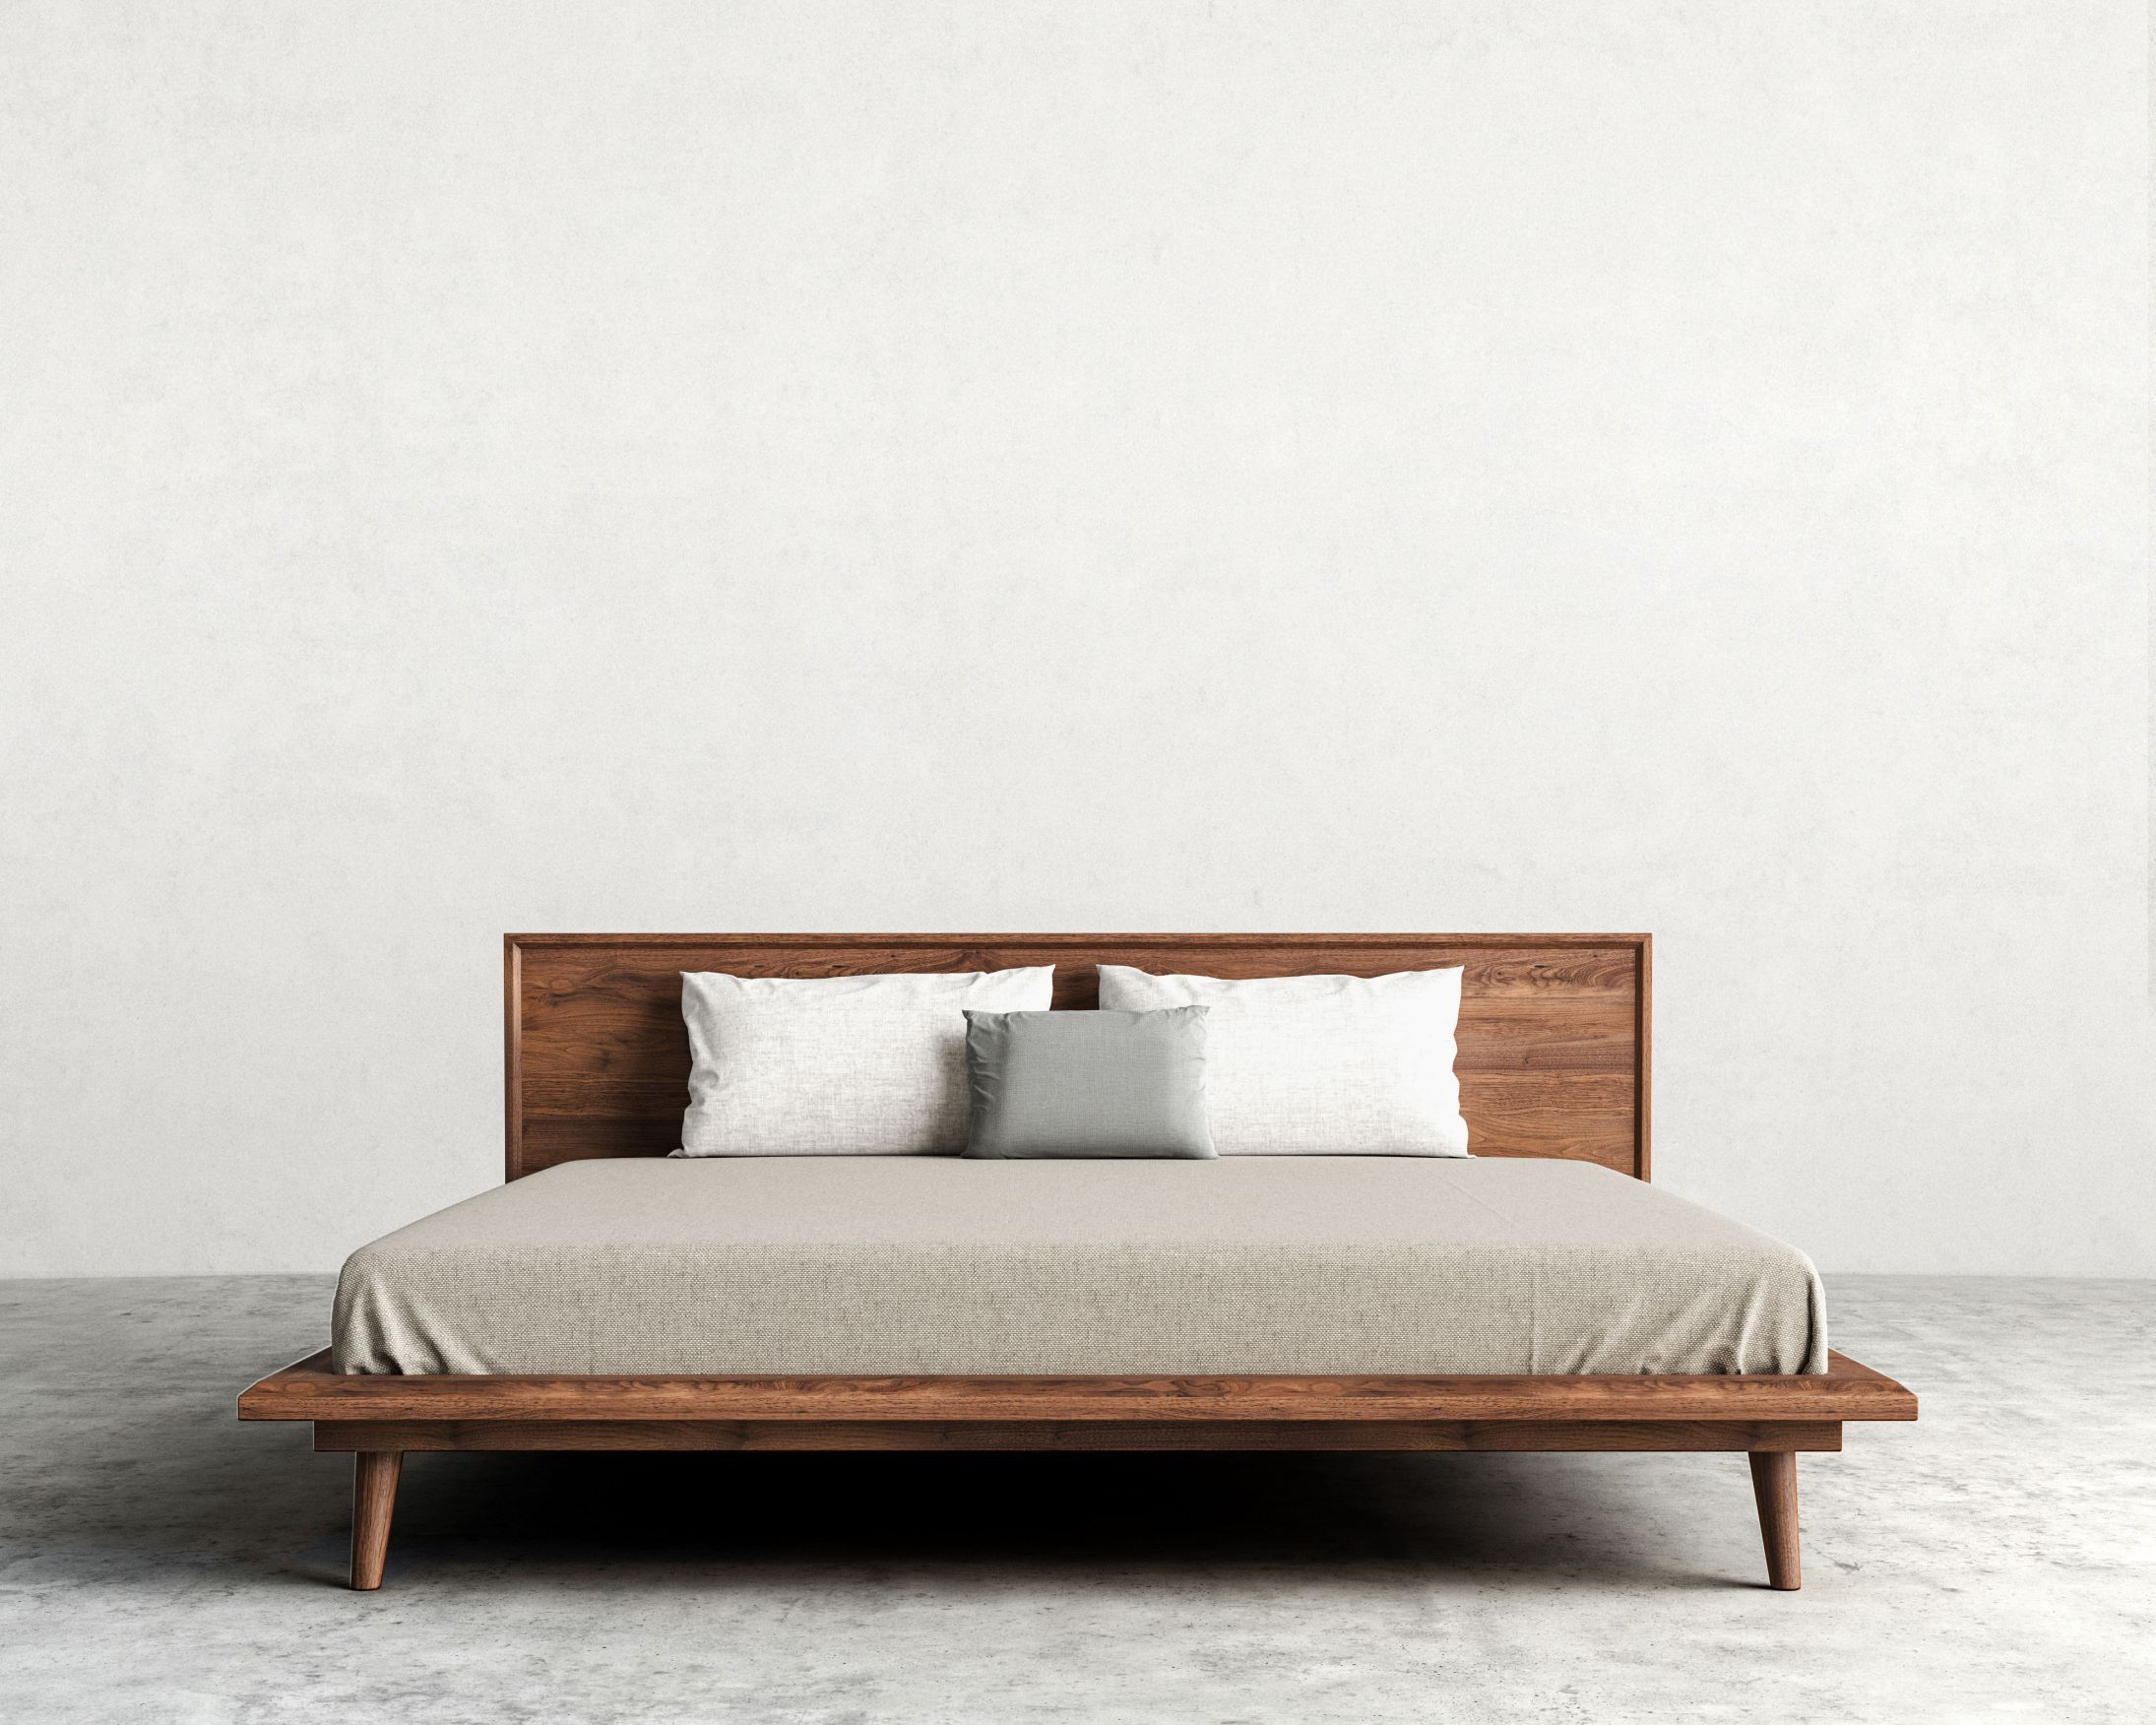 Asher is a mid century modern inspired bed